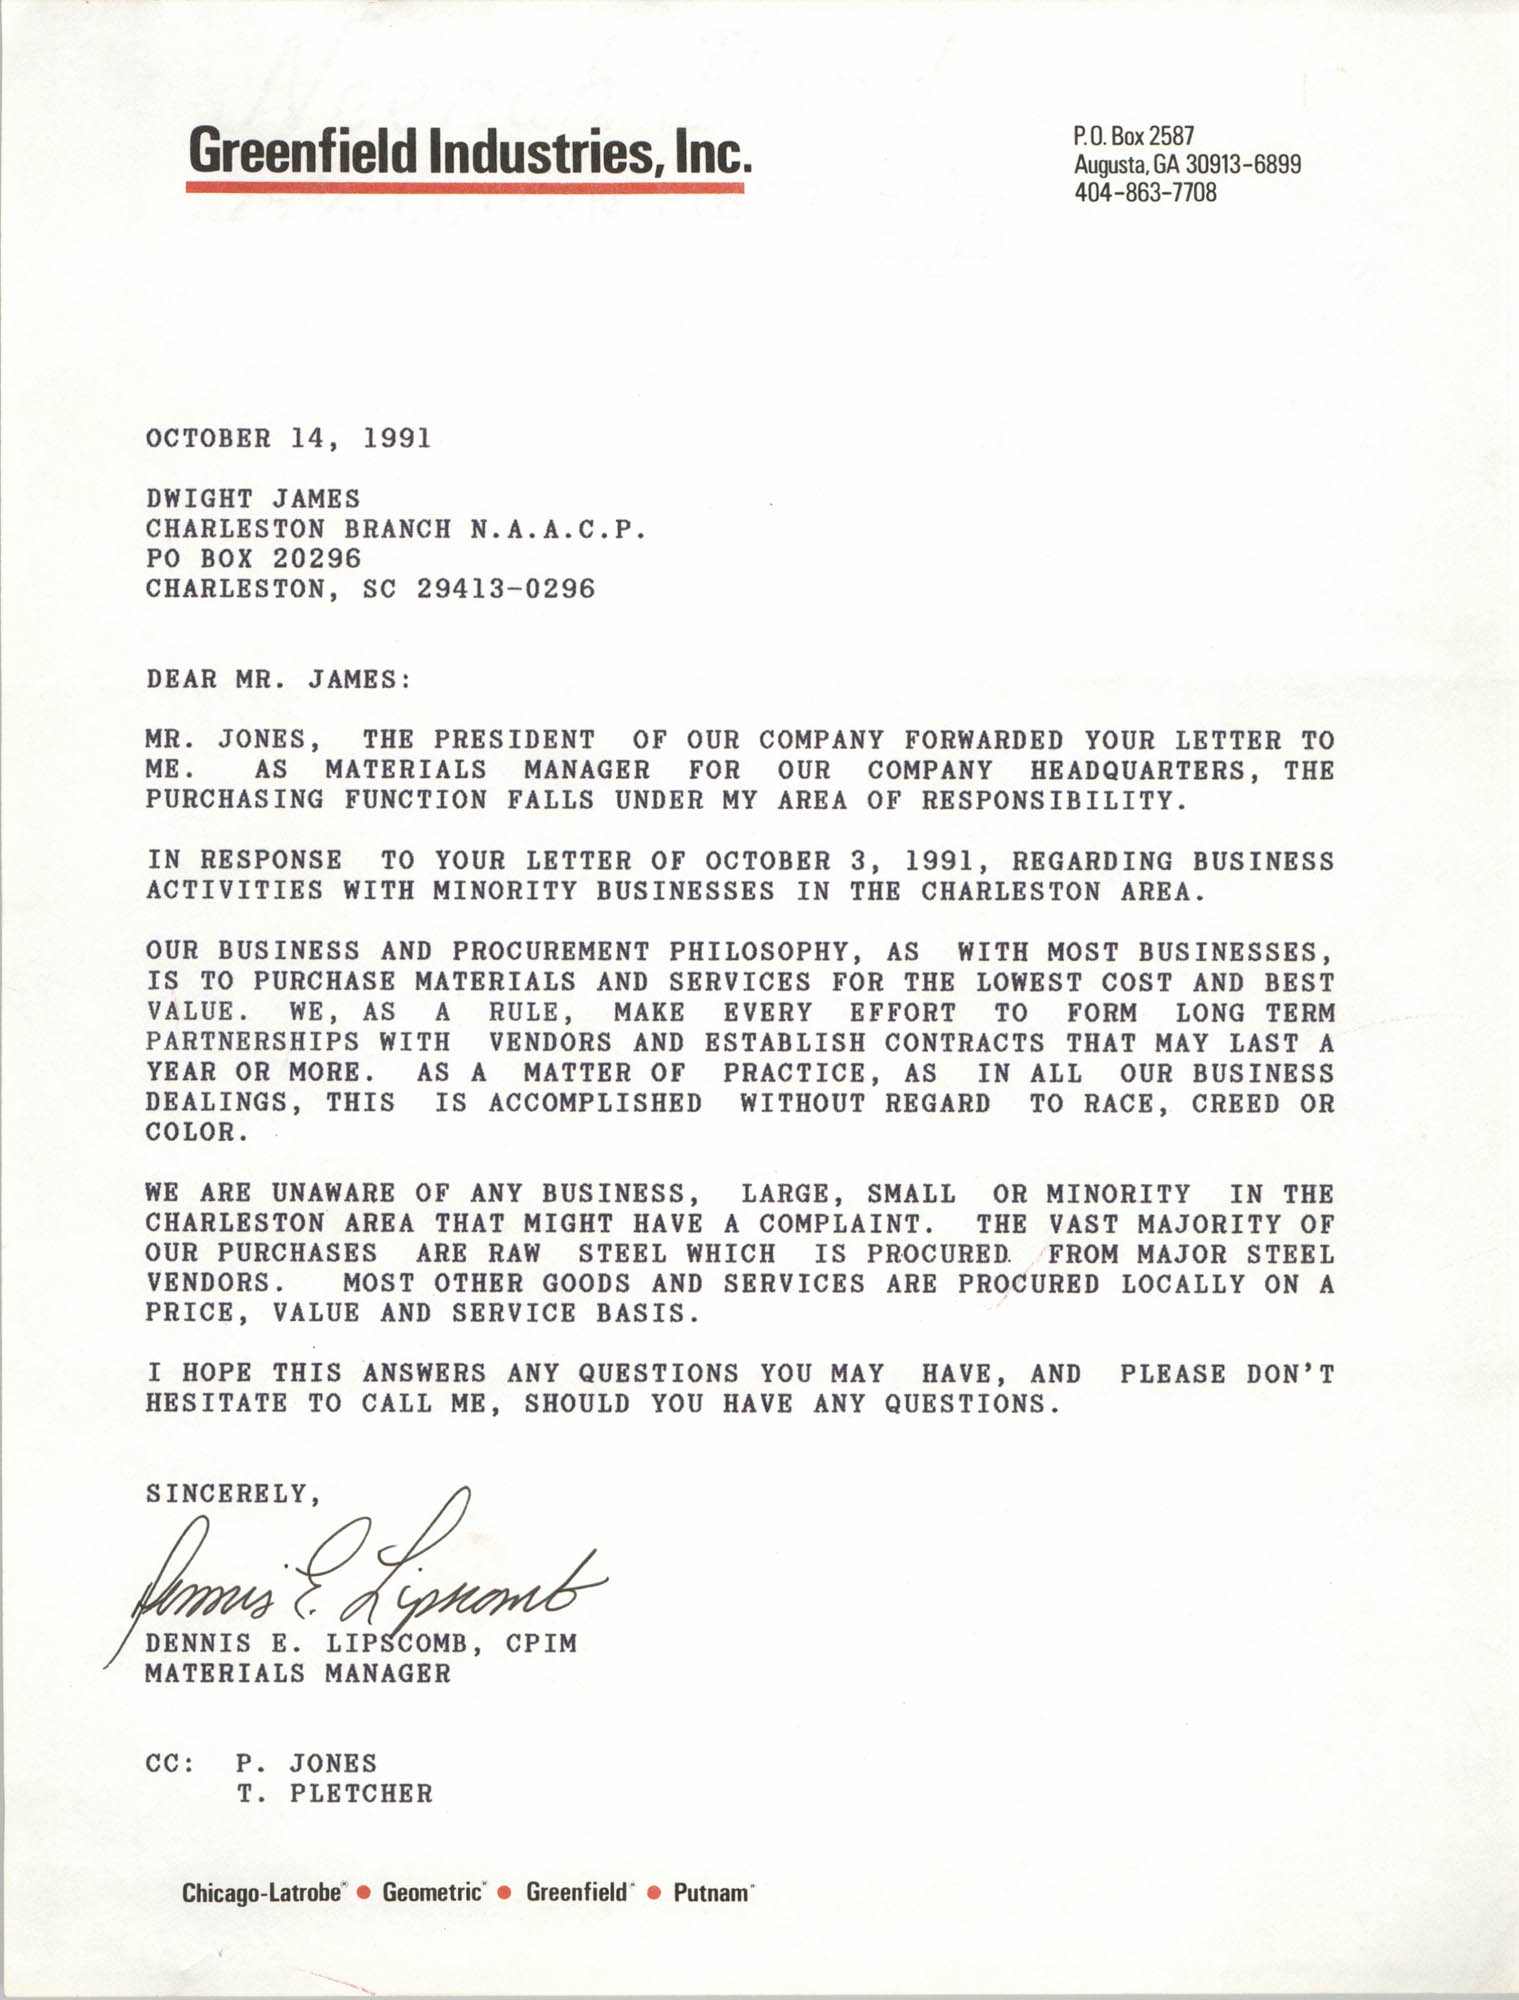 Letter from Dennis E. Lipscomb to Dwight James, October 14, 1991